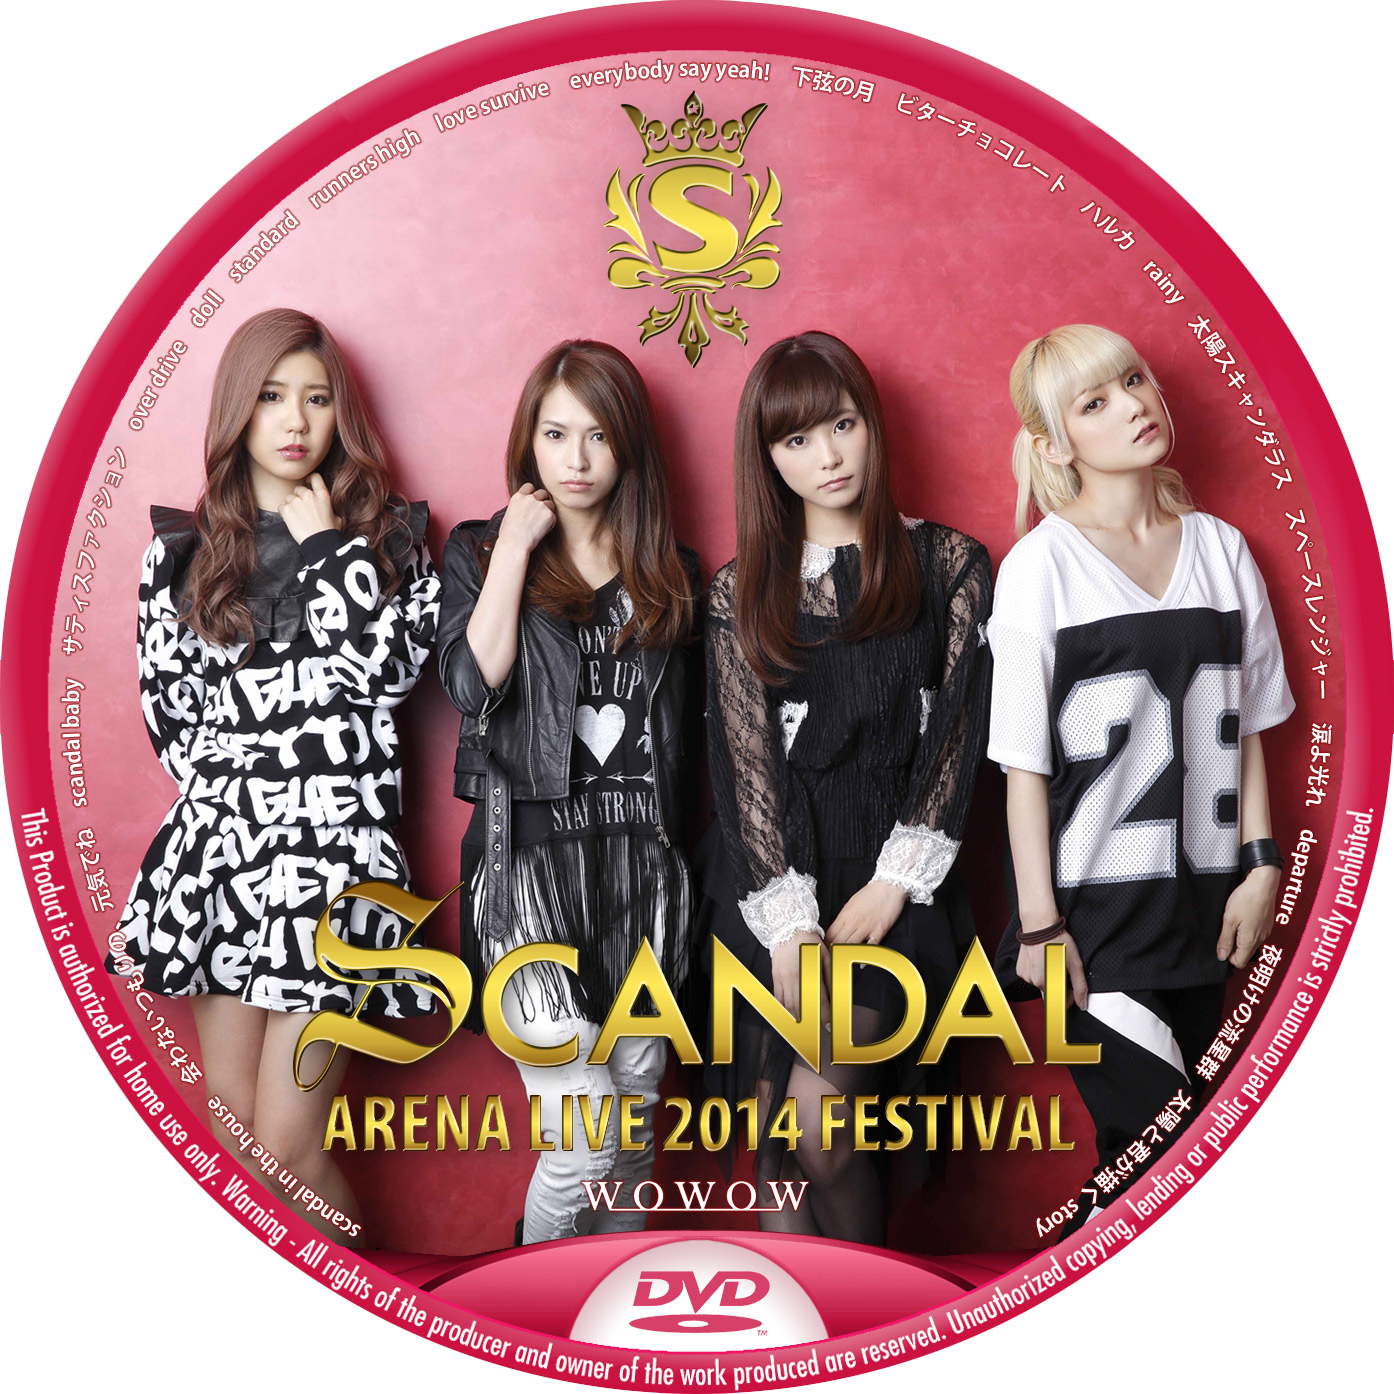 SCANDAL AREANA LIVE 2014 DVDラベル WOWOW